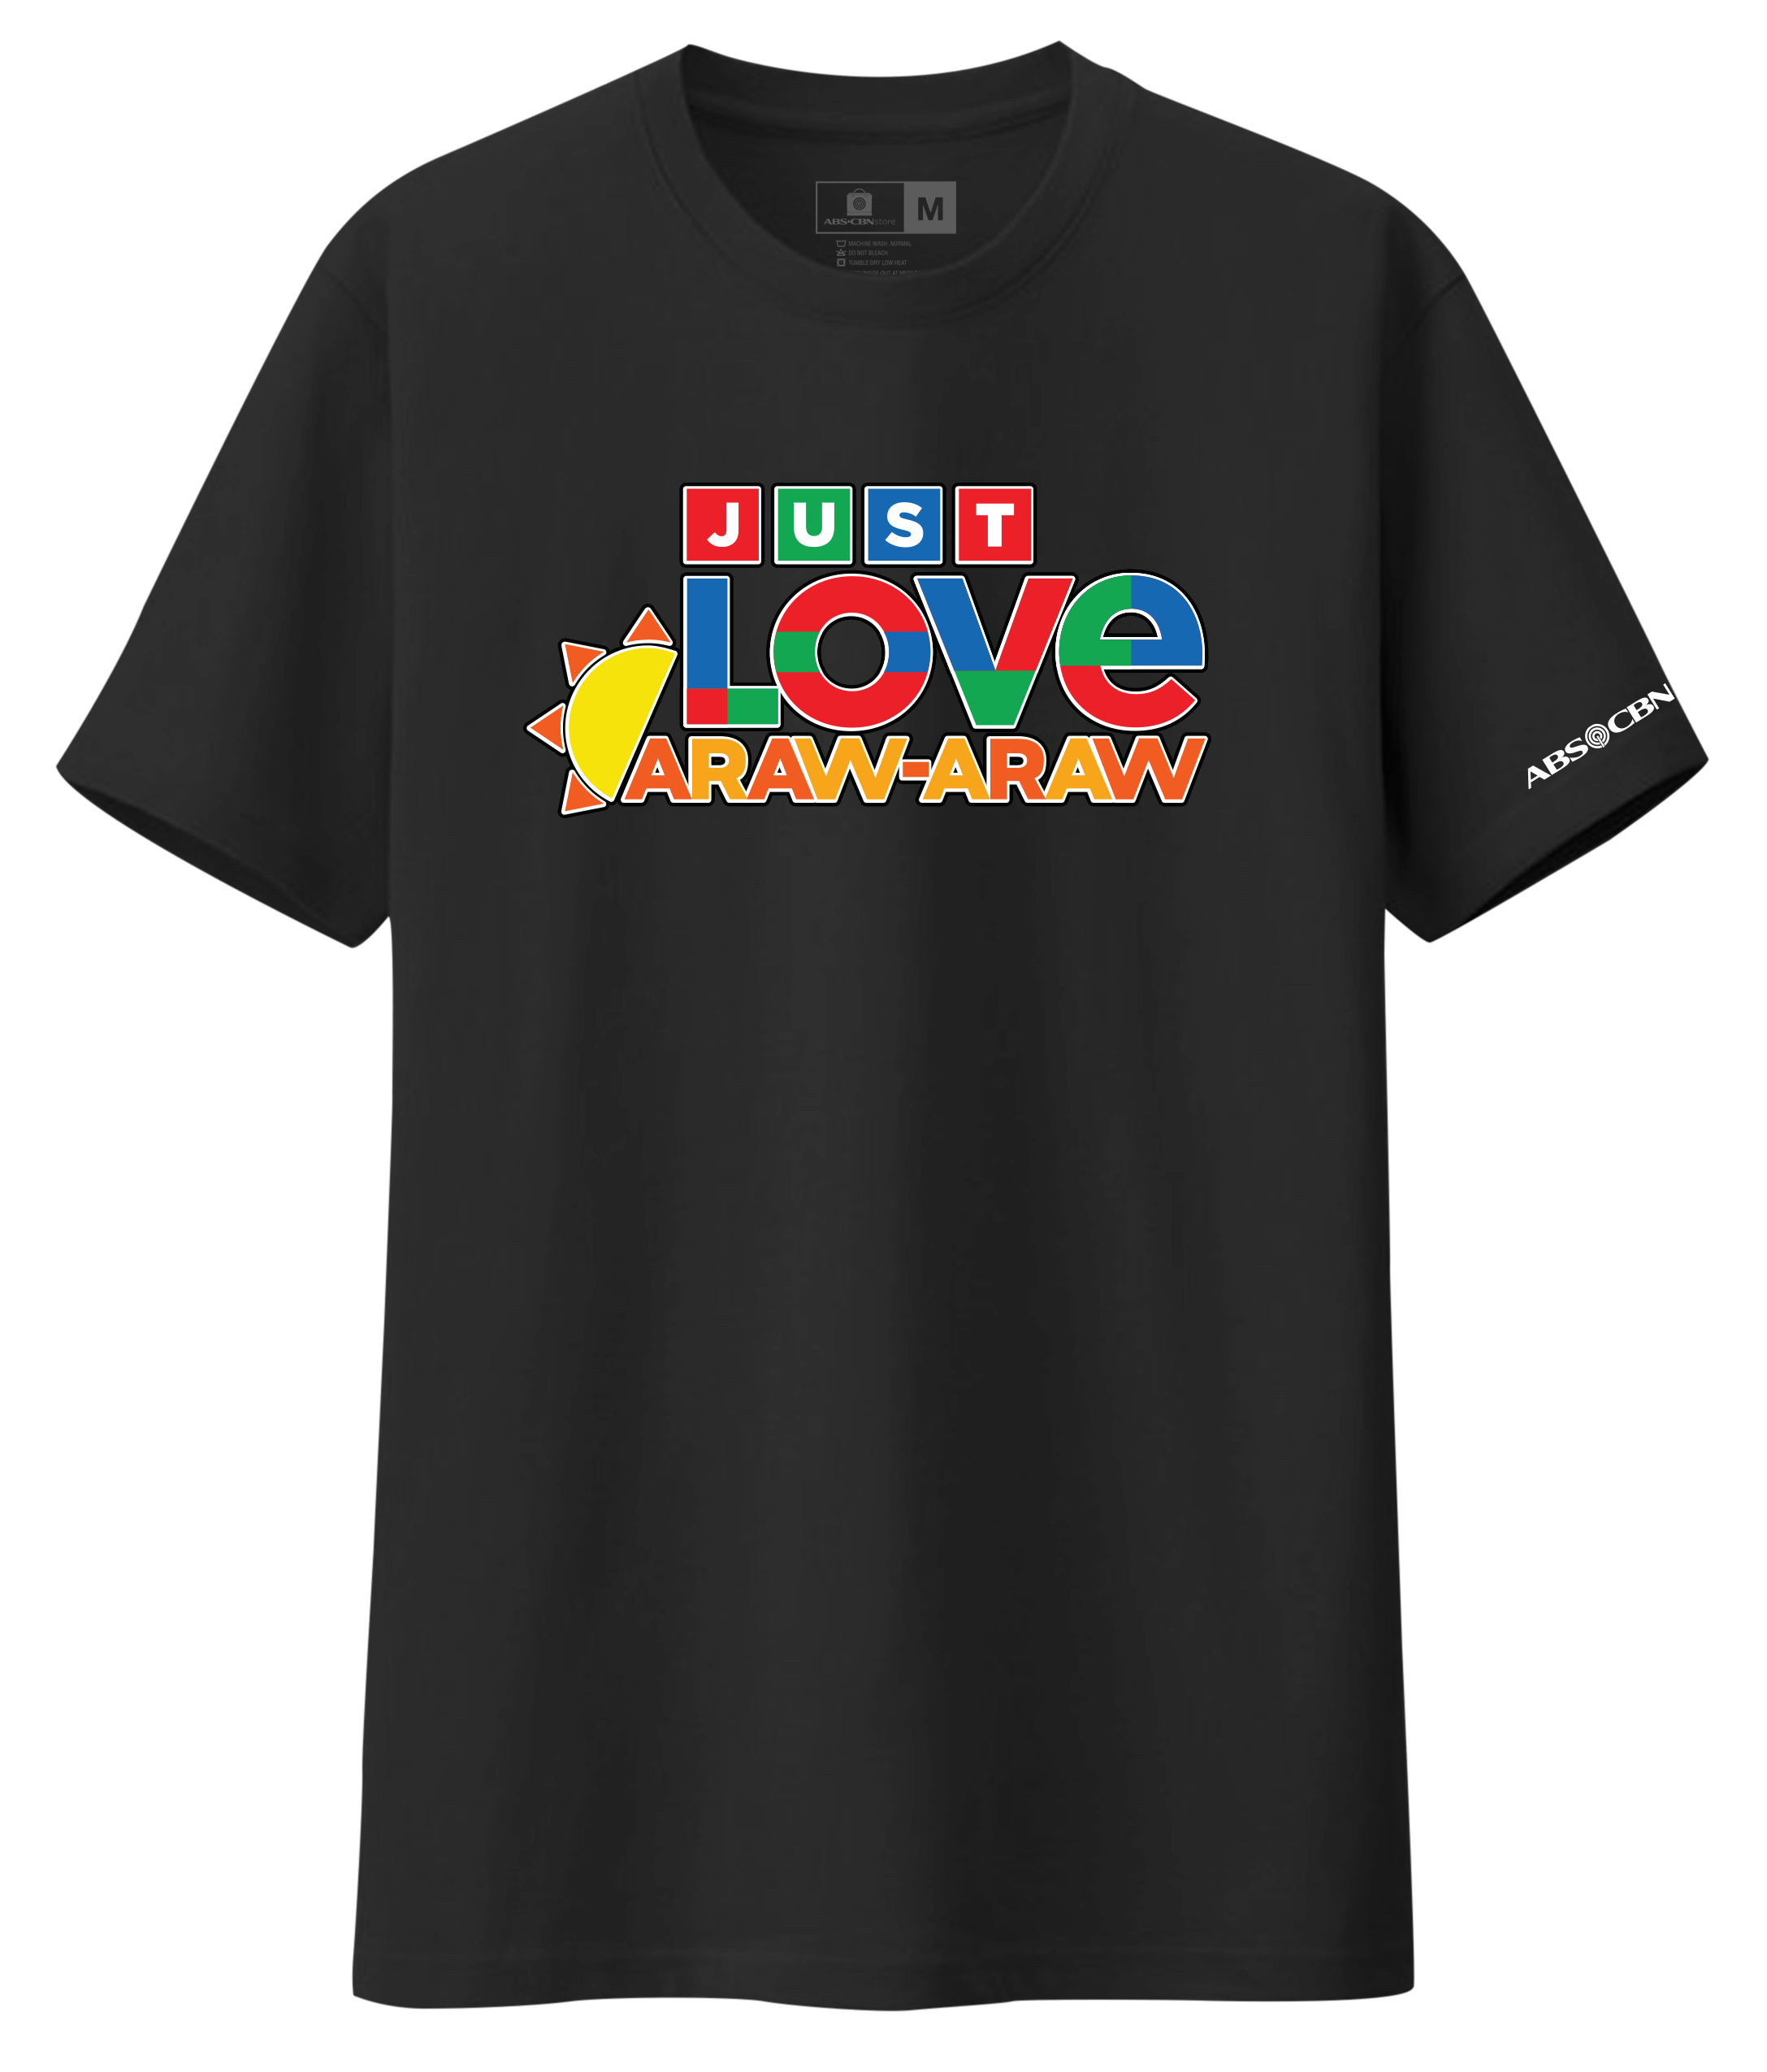 Just Love Araw-Araw Shirt - Black